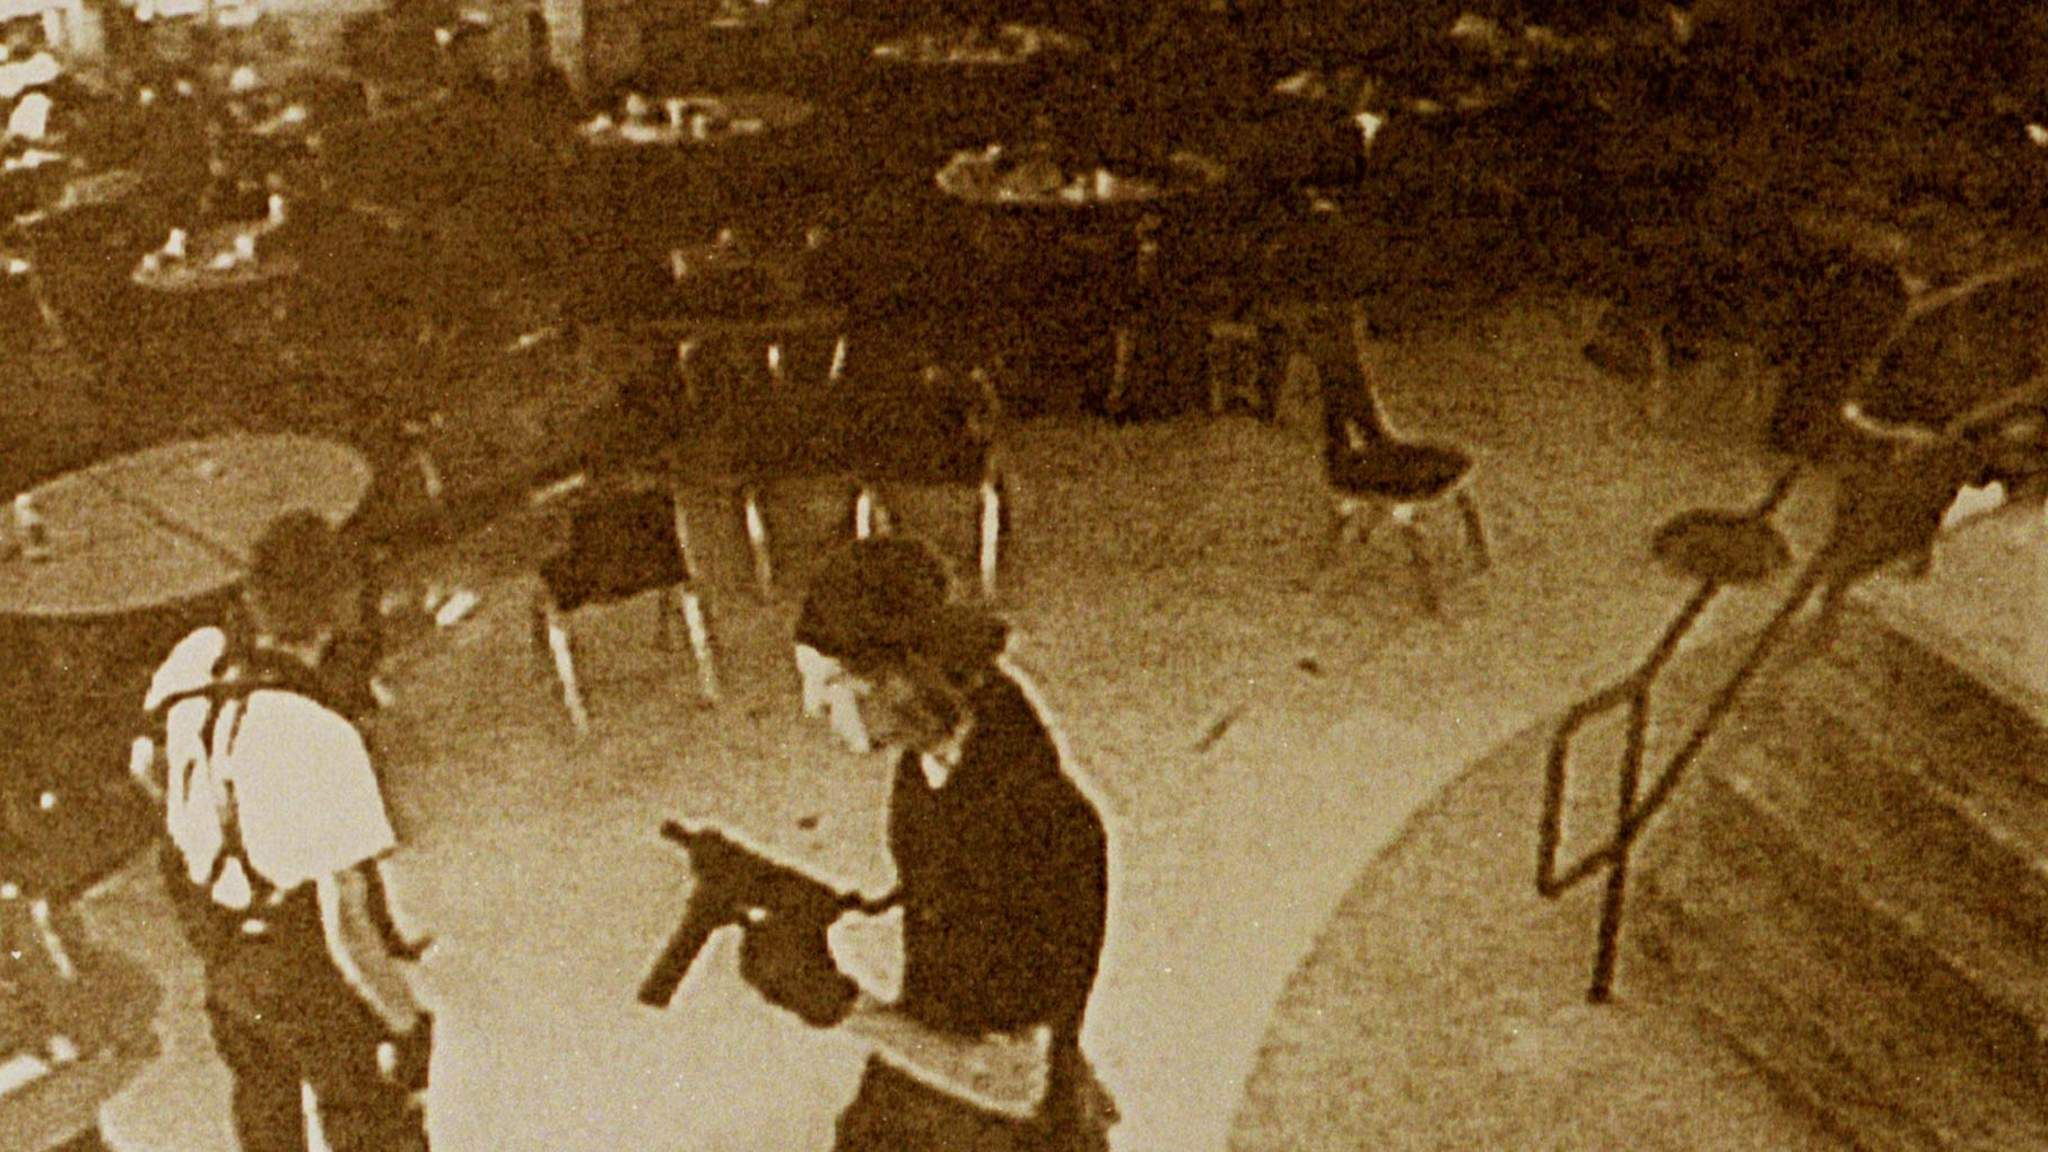 an overview of the things changed in the public schools after the columbine high school incident Monday marked the 10th anniversary of the senseless columbine high school massacre in suburban denver public notices columbine changed things for schools.